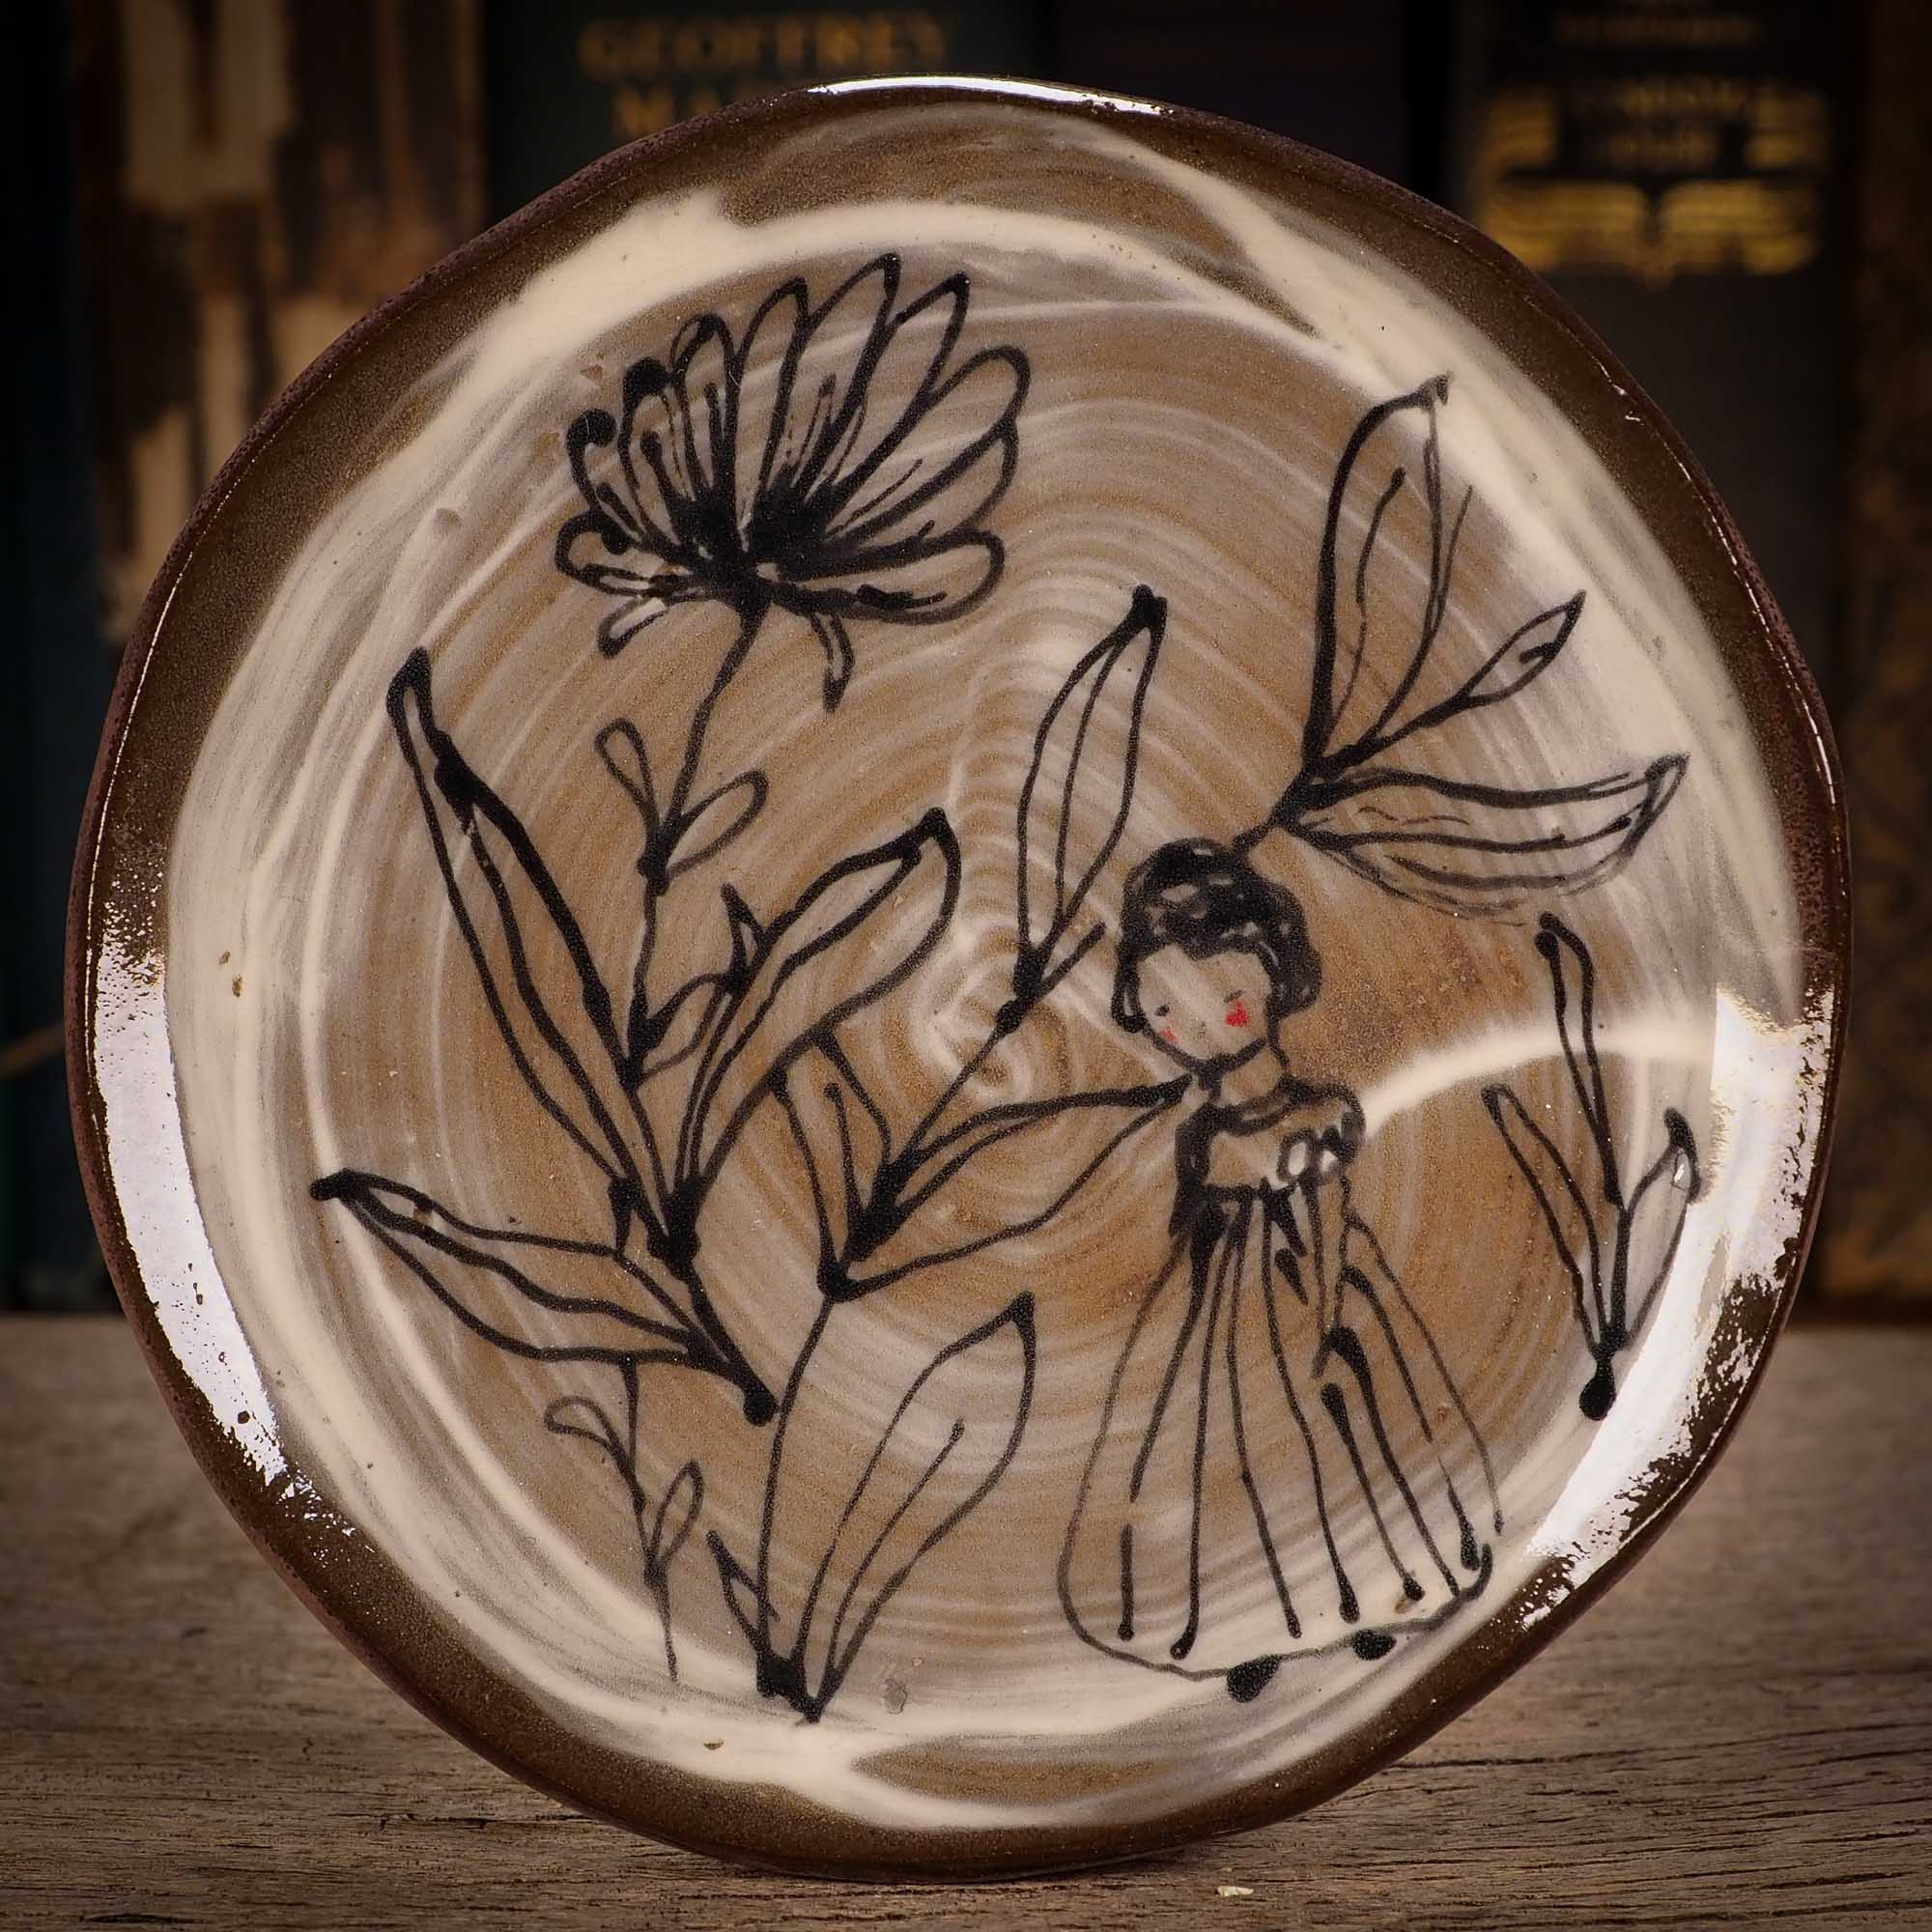 An original glazed ceramic food plate by Idania Salcido, the artist behind Danita Art. Totally handmade in my studio, this is a unique piece that cannot be repeated. Food and drink safe, hand wash only. Brown earth tones and an ink drawing of a girl on the outside.